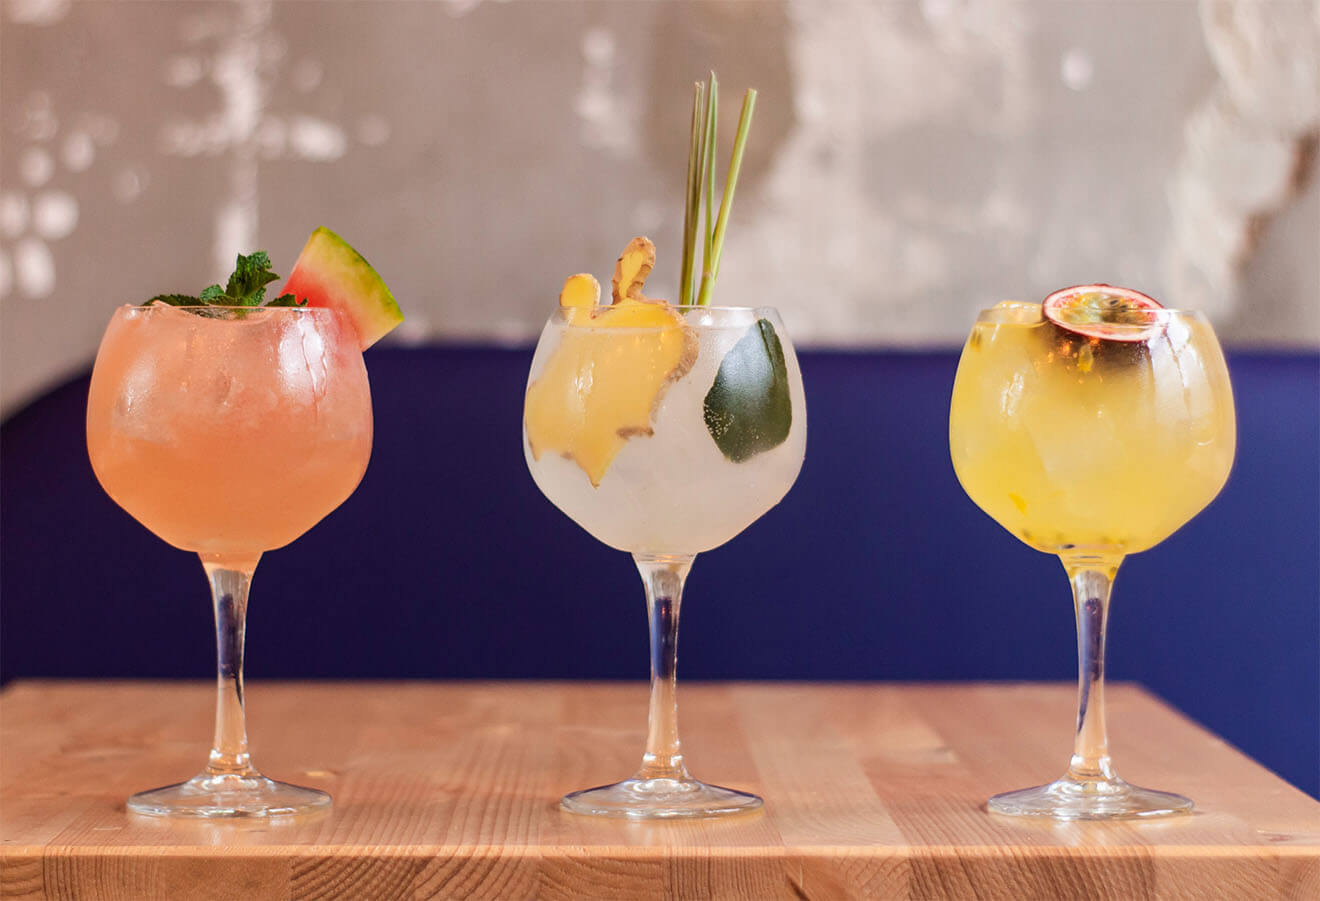 Tips for Competing Mixologists